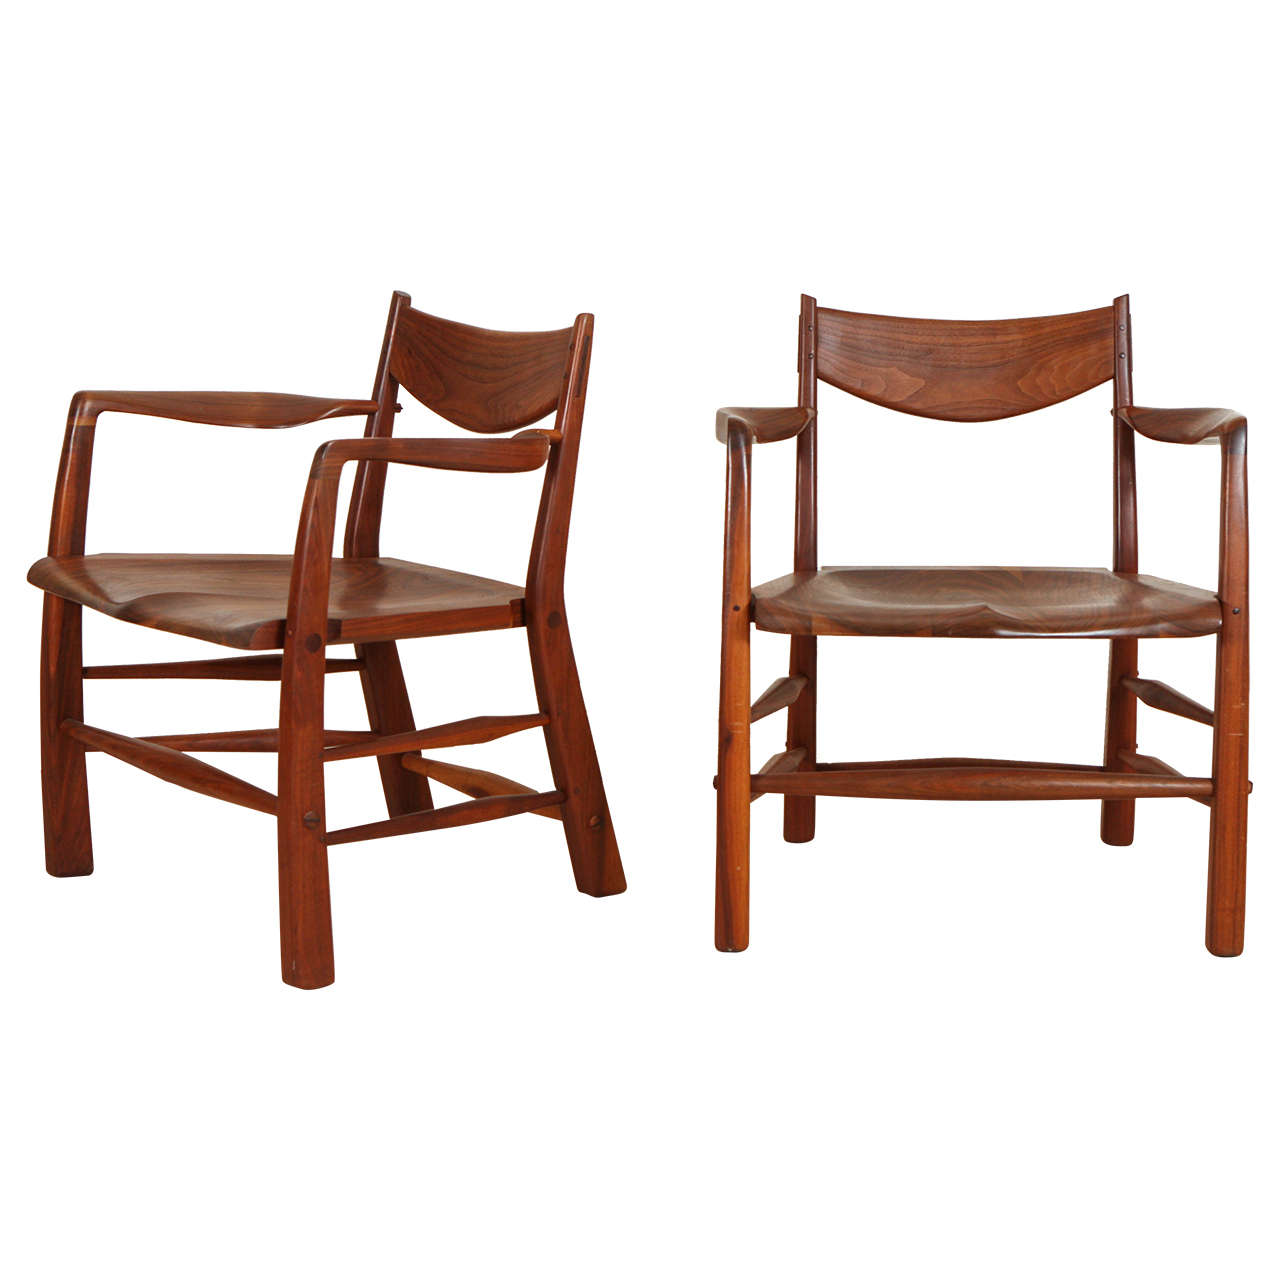 Pair of Walnut Chairs by Richard Patterson